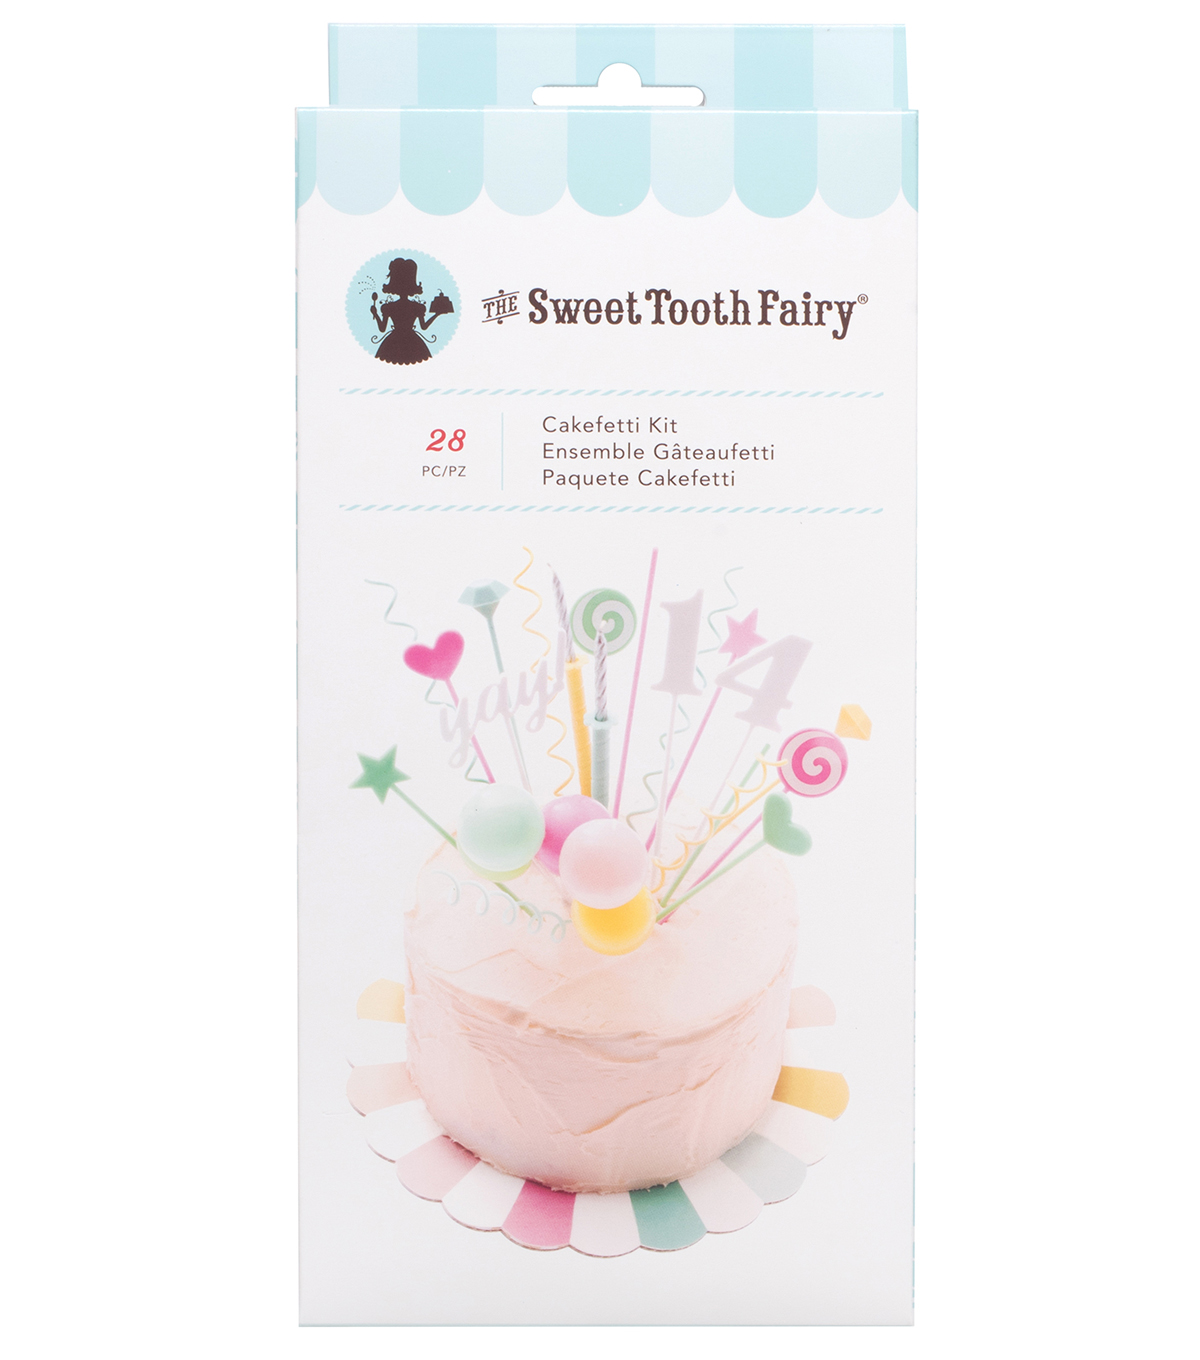 The Sweet Tooth Fairy 28 pk Cakefetti Kit